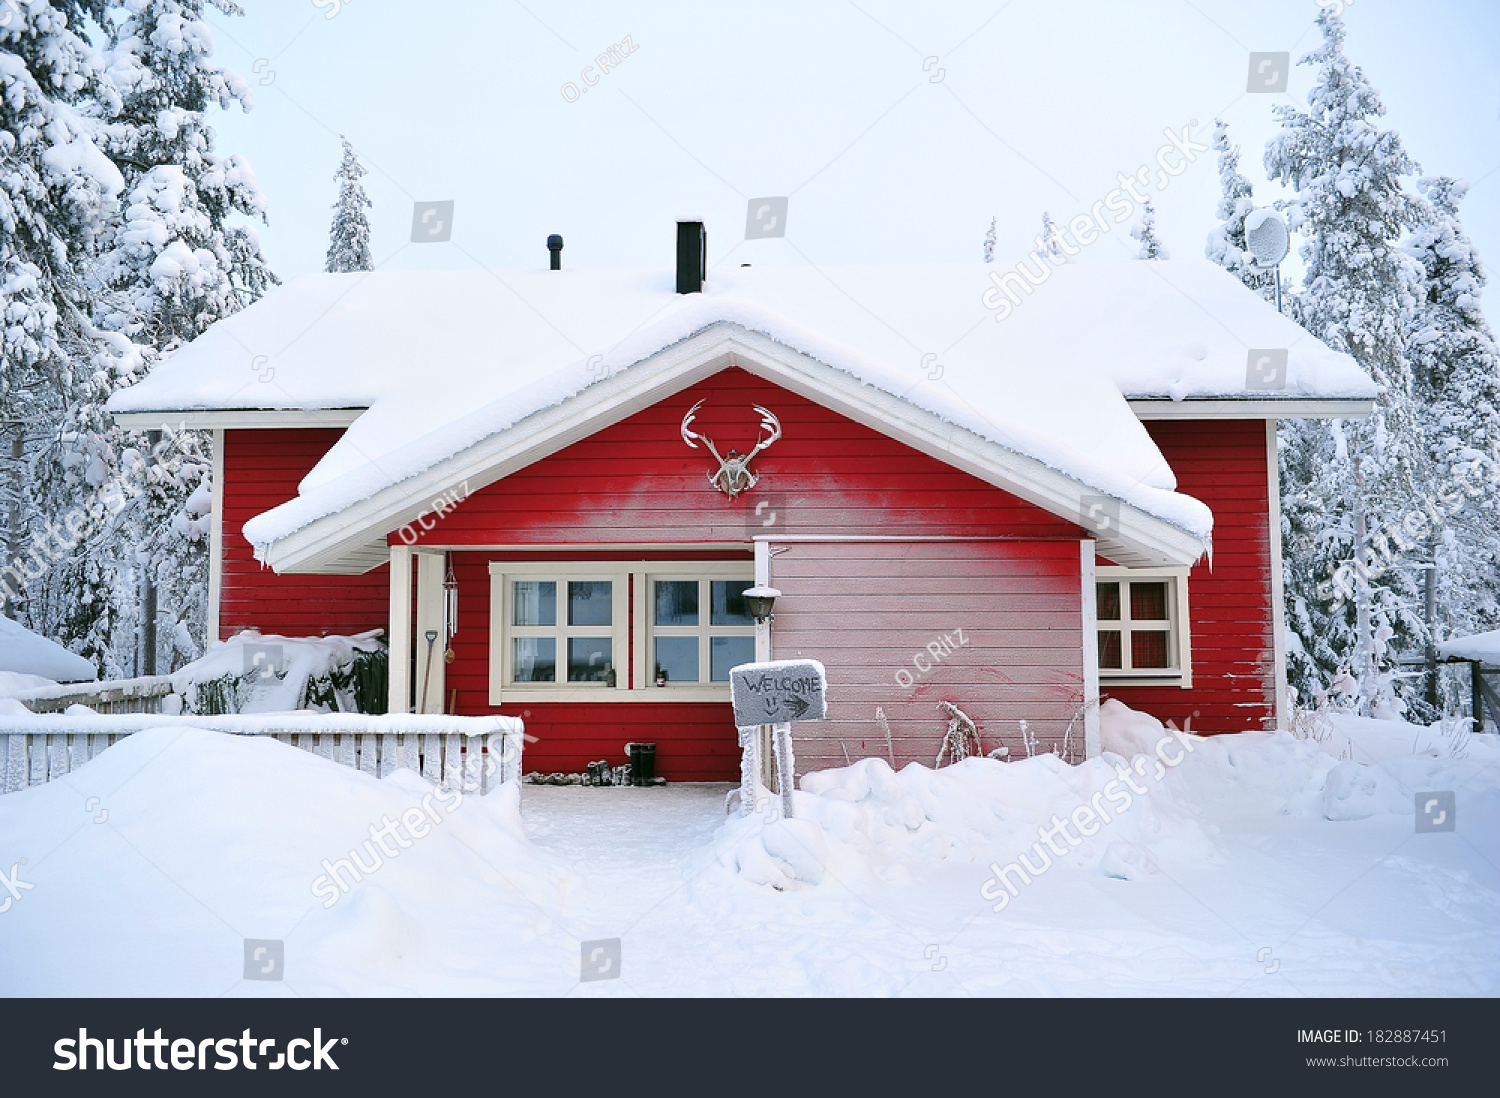 Log cabin in the woods winter - Red Log Cabin In The Woods